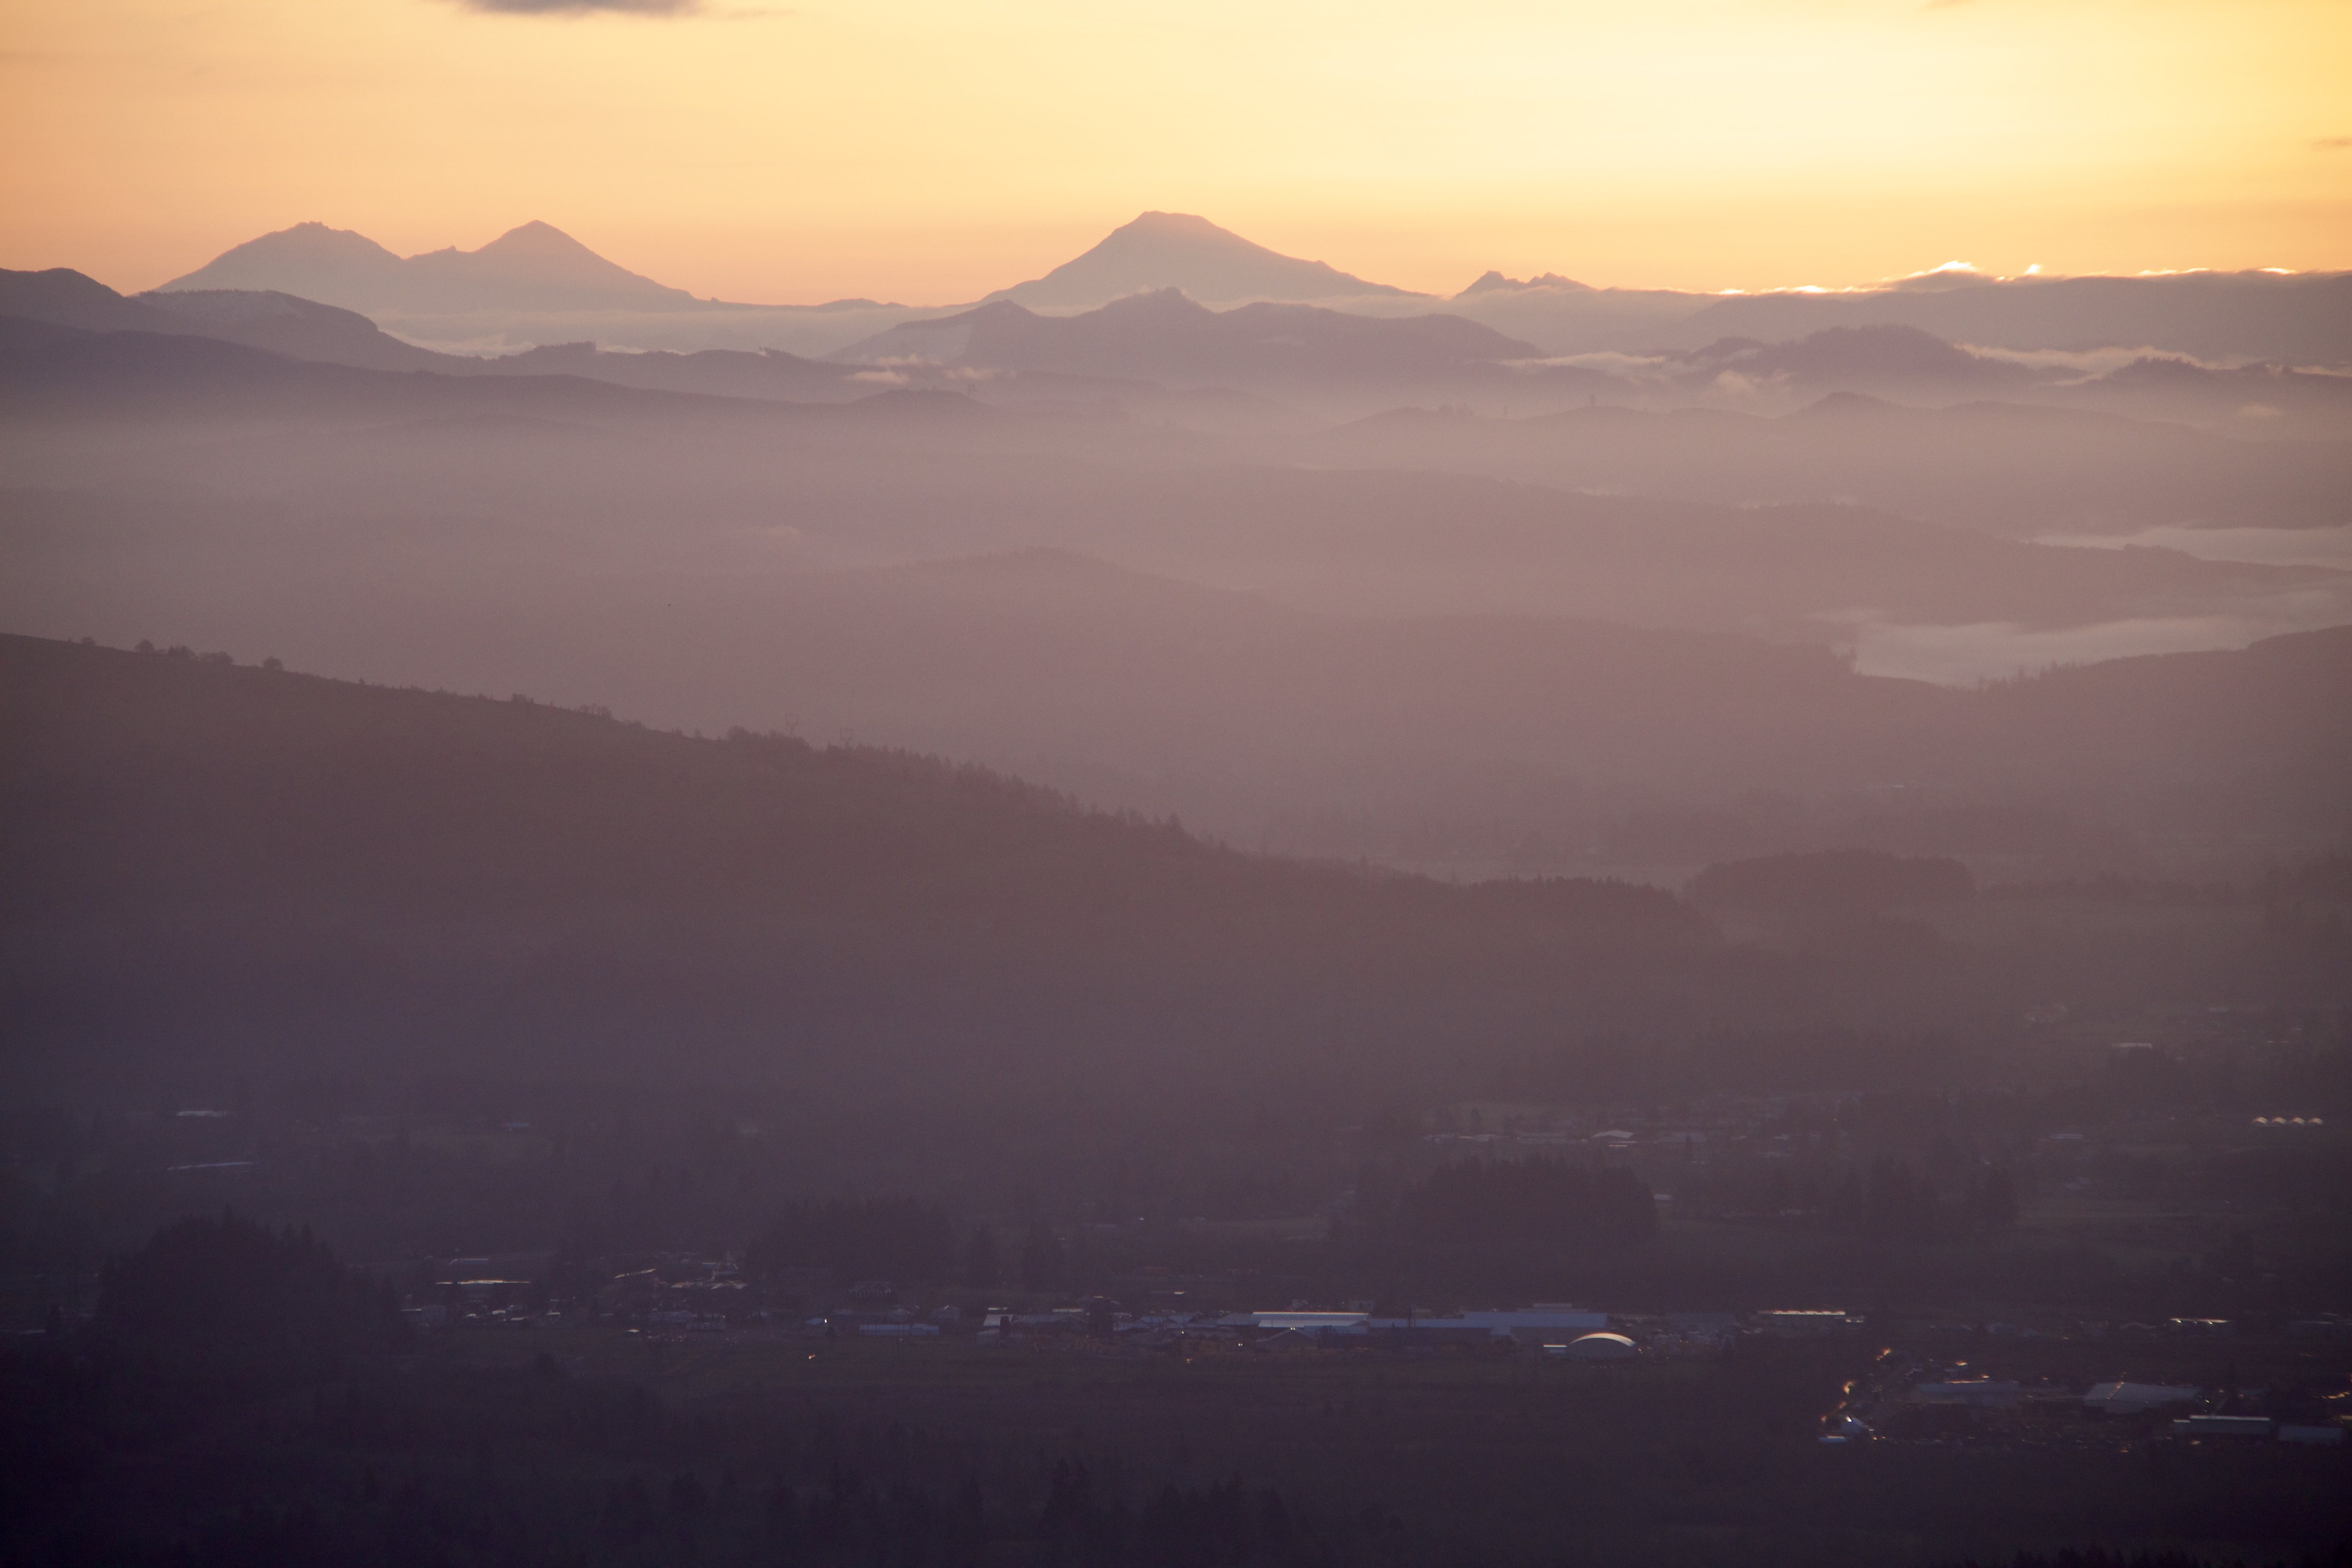 View of the 3 sisters from the west at sunrise